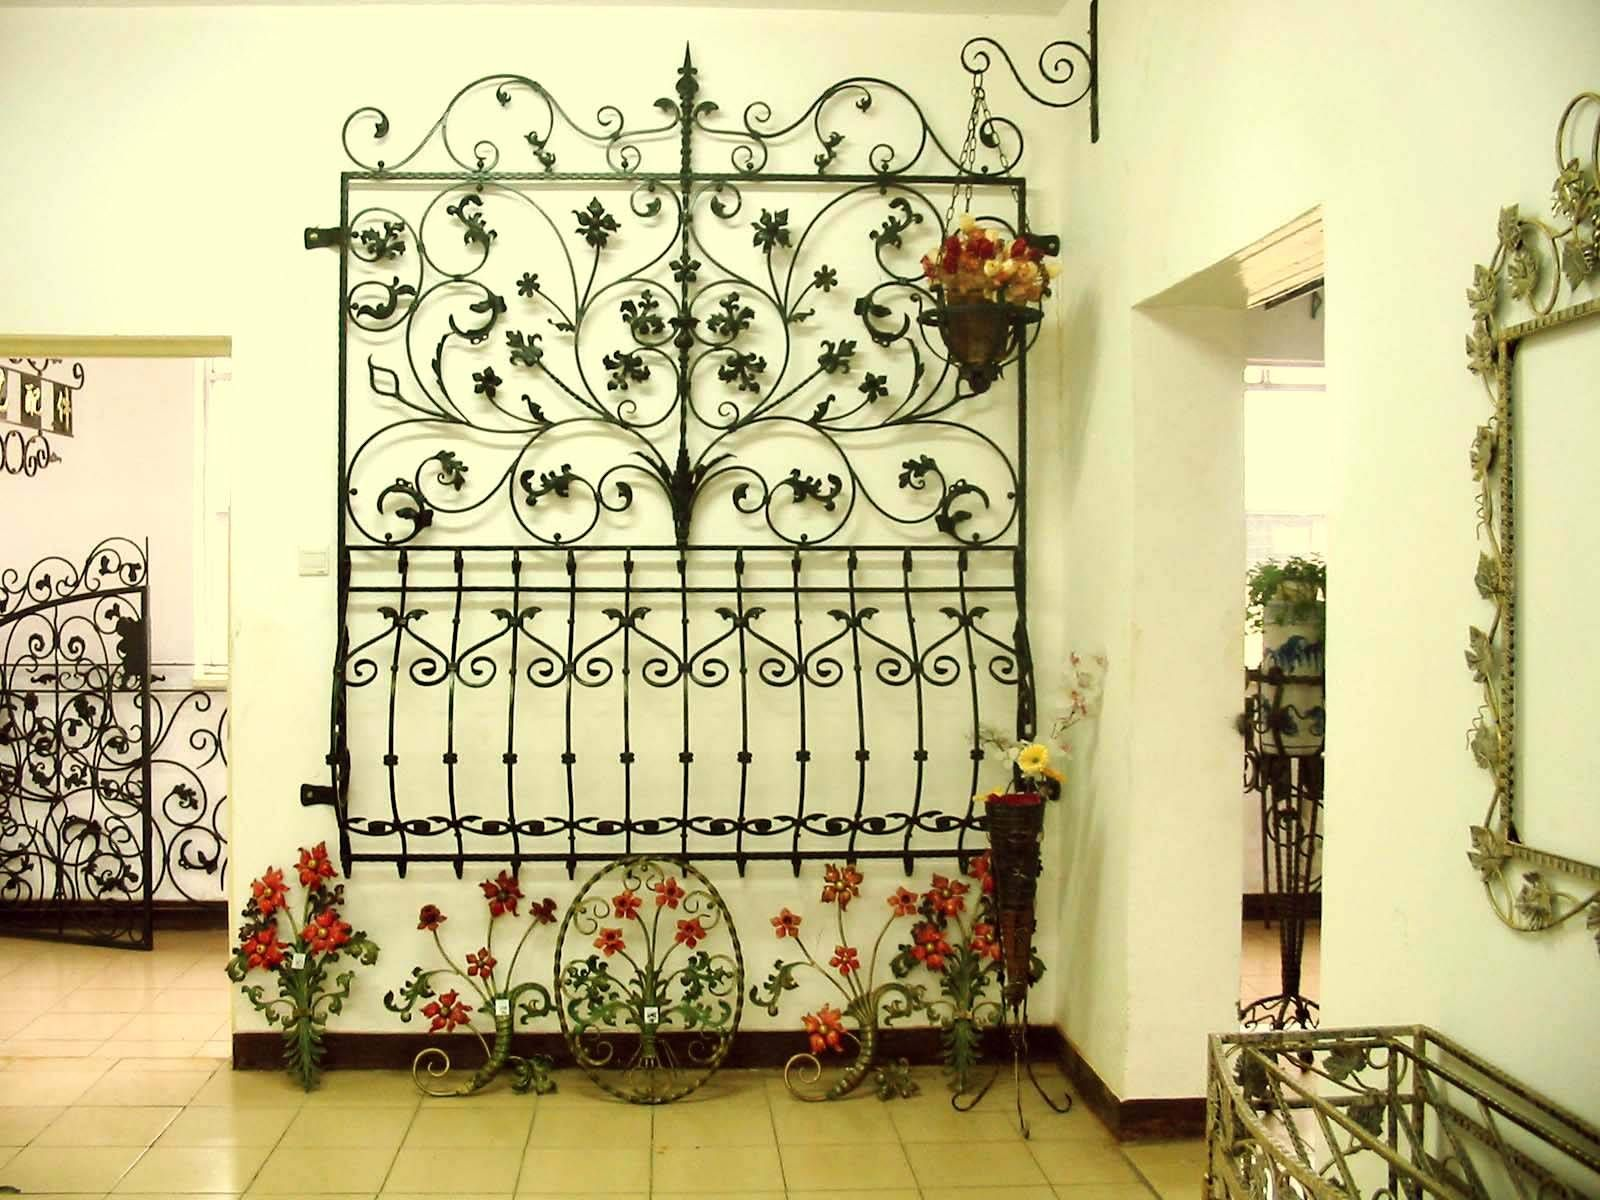 Beautiful Wrought Iron Wall Art Design | HOW TO MAKE | Pinterest ...